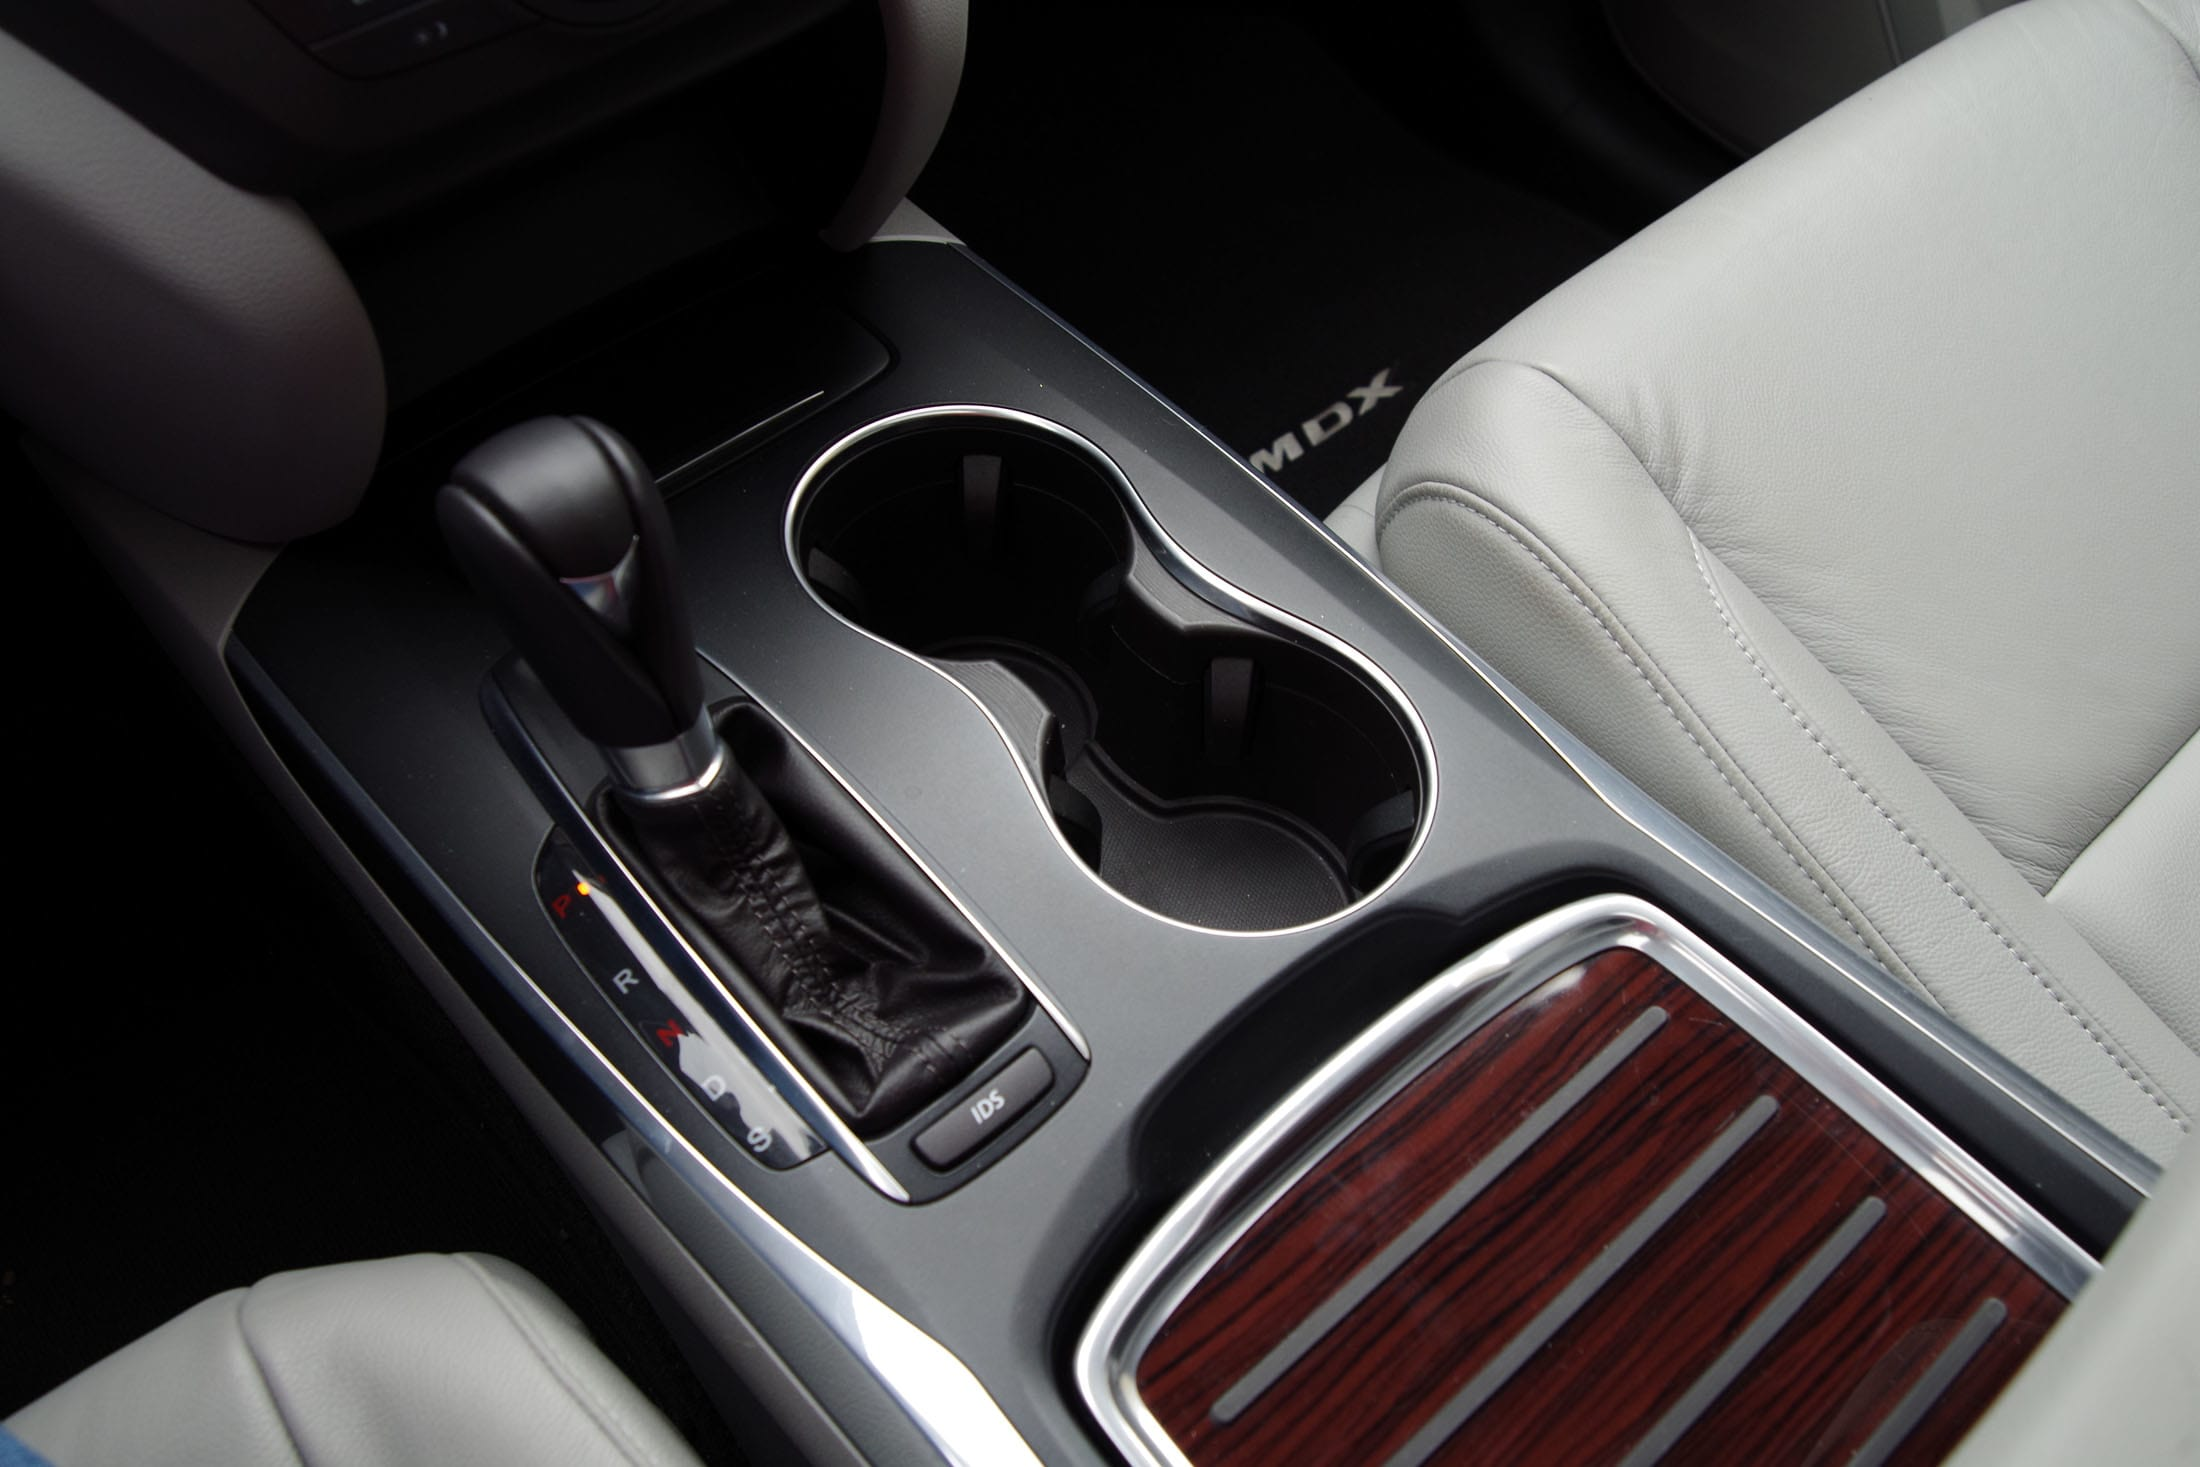 The 2014 Acura MDX comes with two cupholders and a cavernous center storage console.